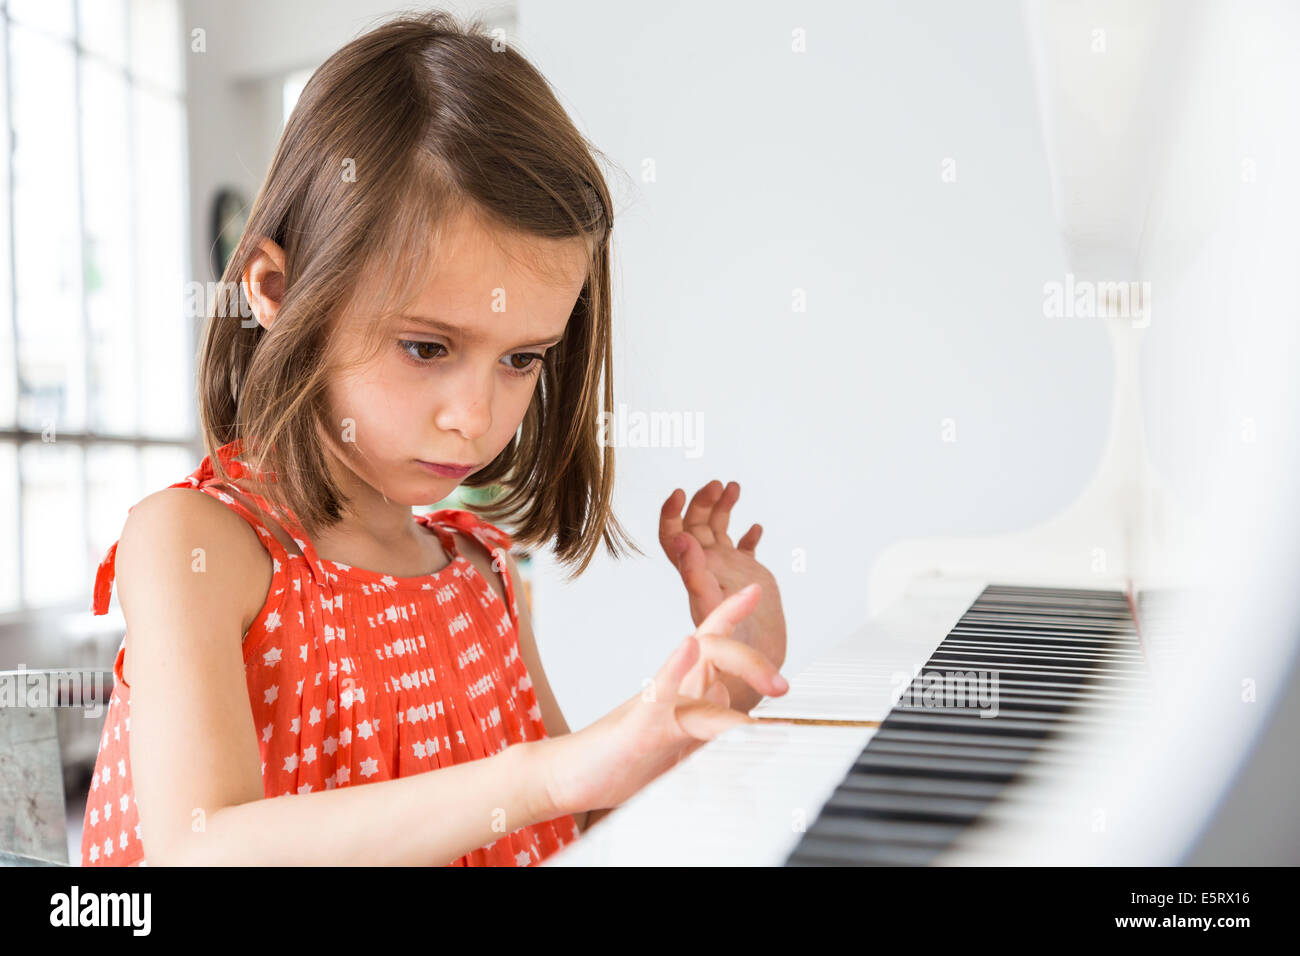 5-year-old girl jouer du piano. Banque D'Images